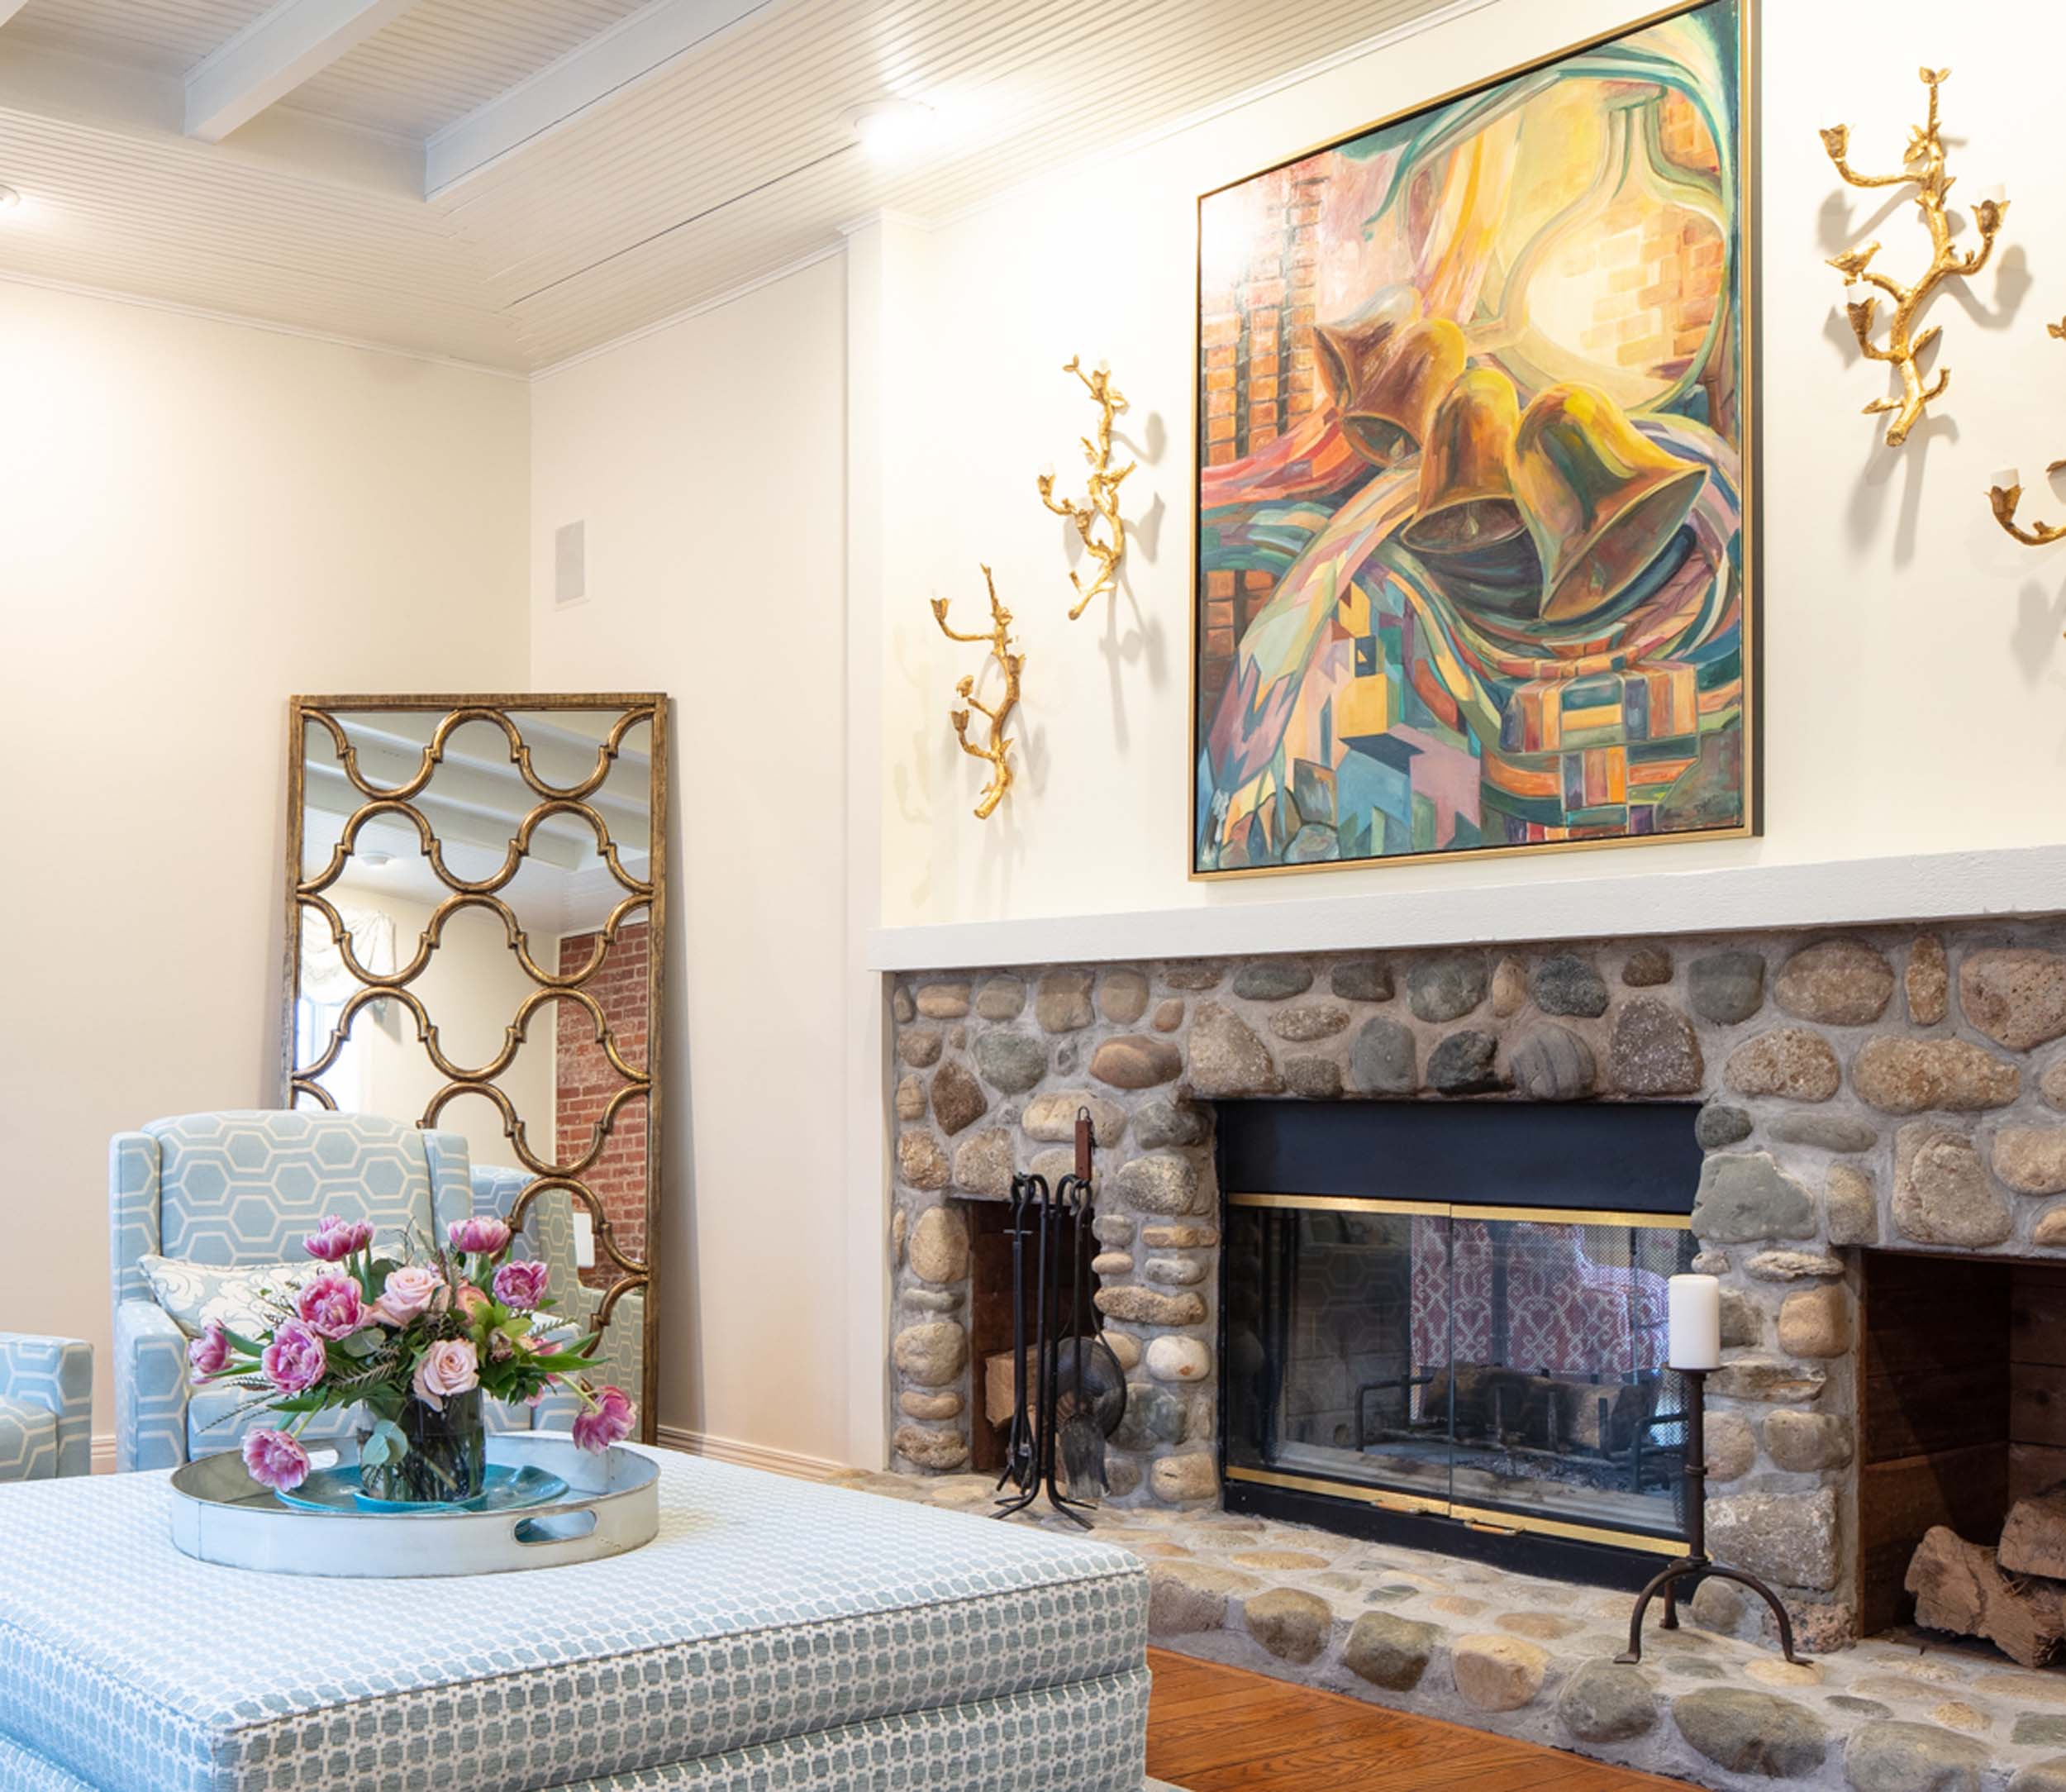 Living room with stone fireplace, ottoman and artwork on the wall